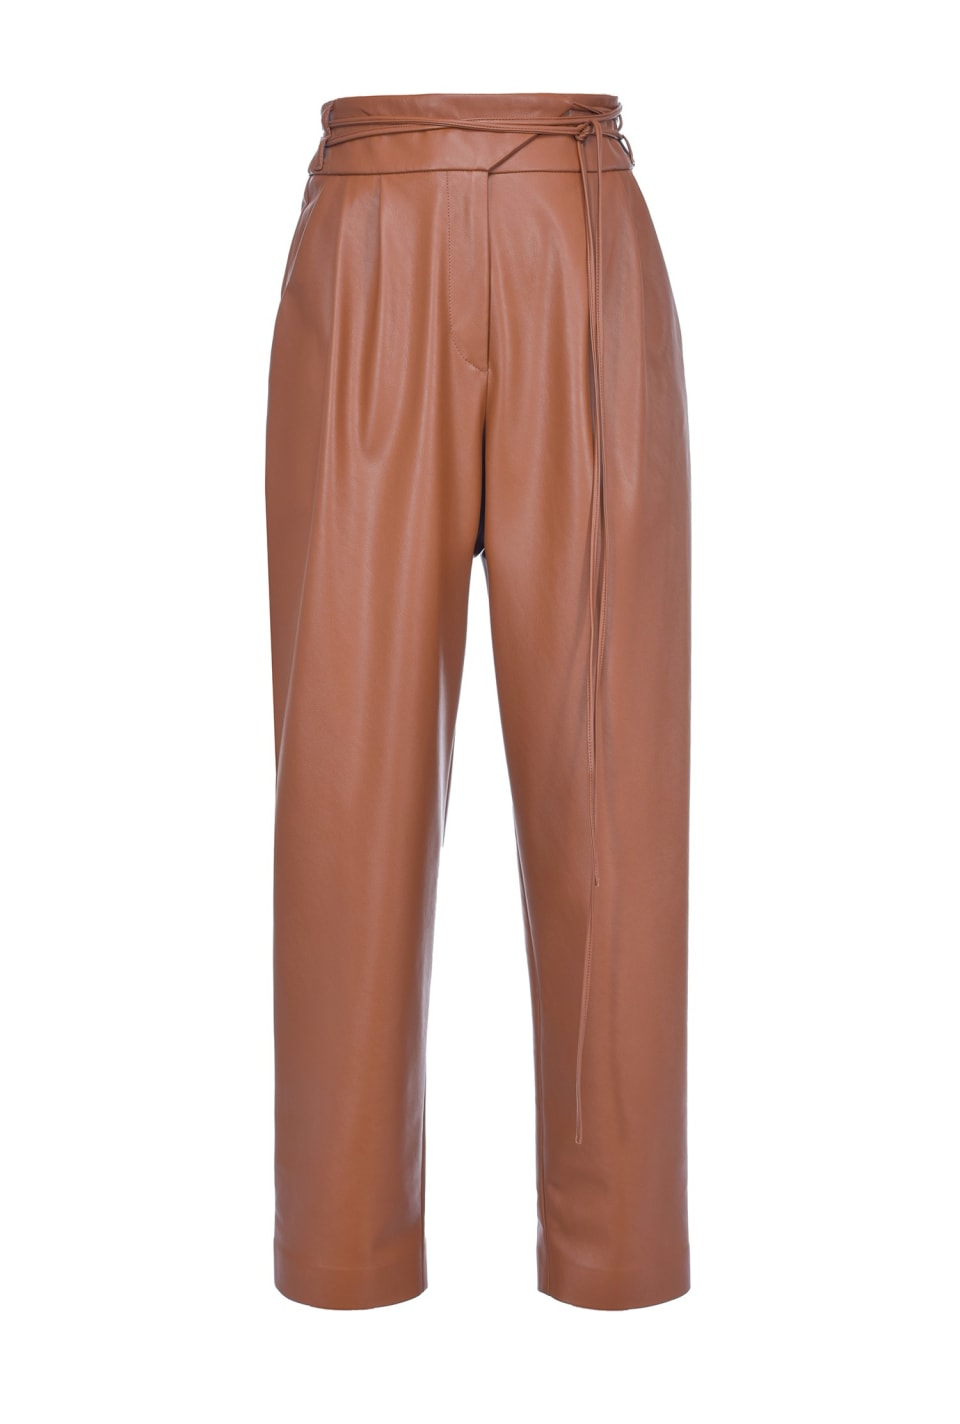 Leather-look trousers with slit on the side - Pinko